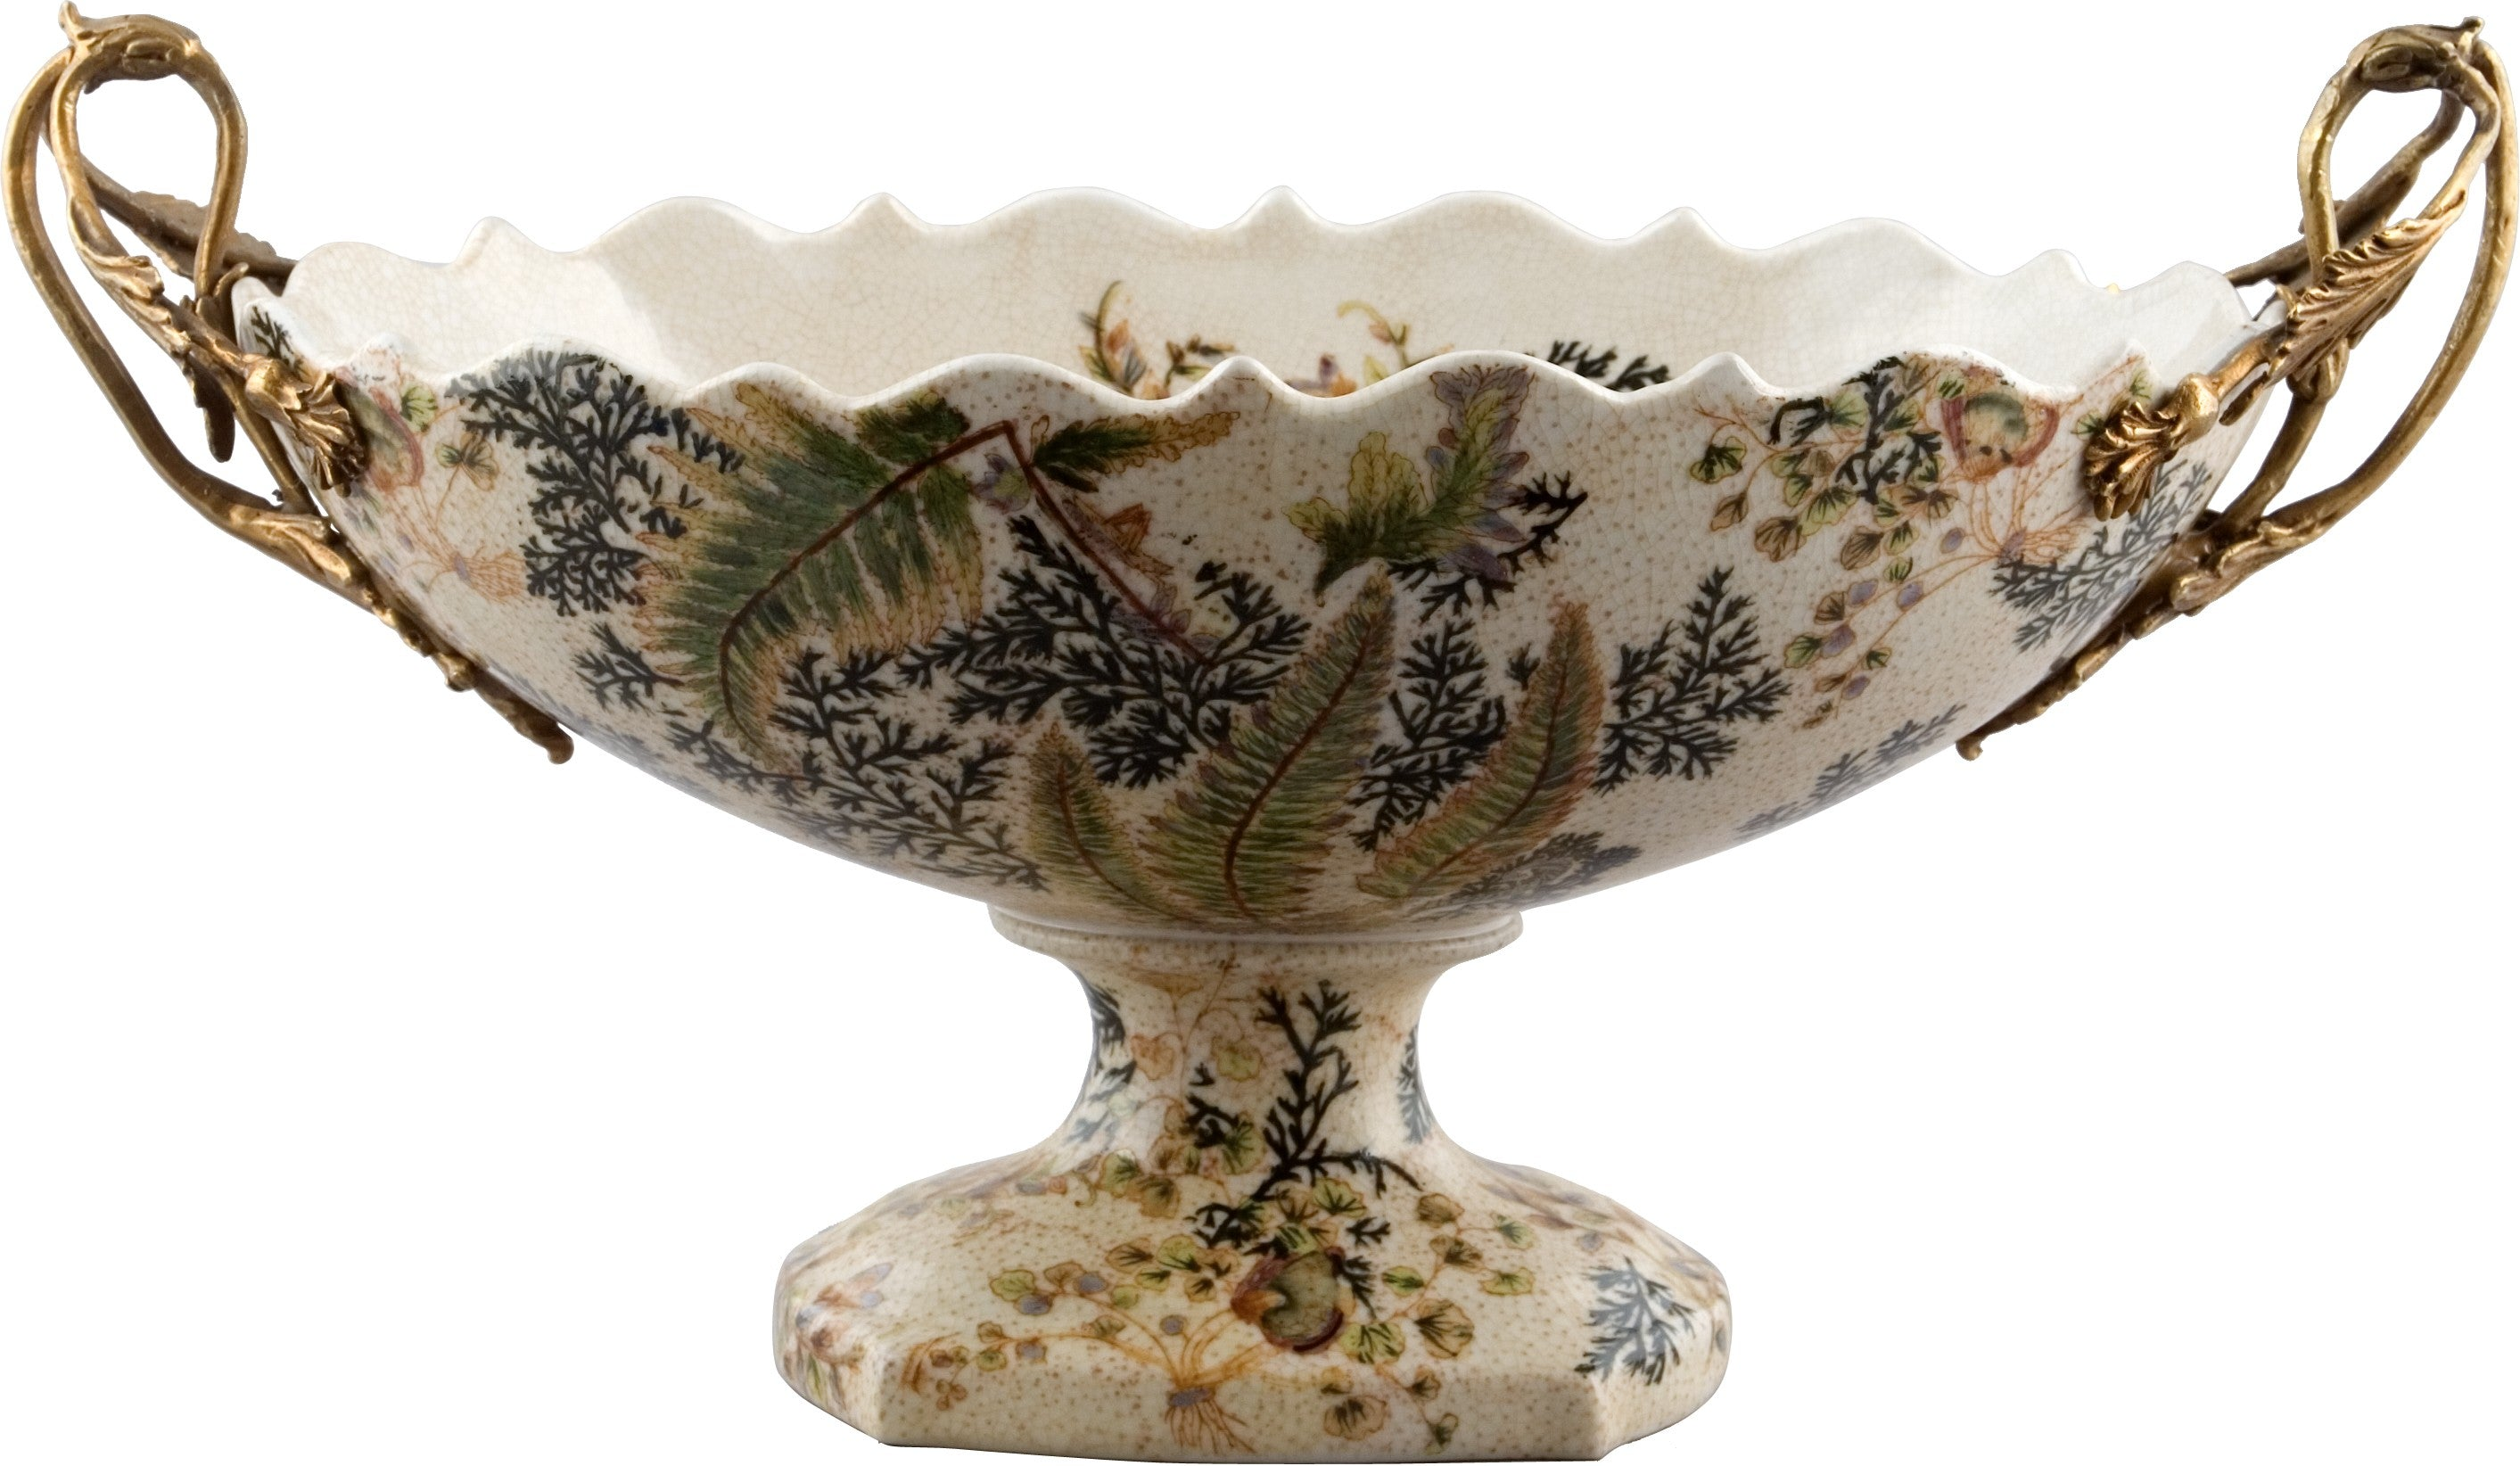 Lovecup Centerpiece Table Top Bowl with Bronze Handles and Moss Fern Design L209